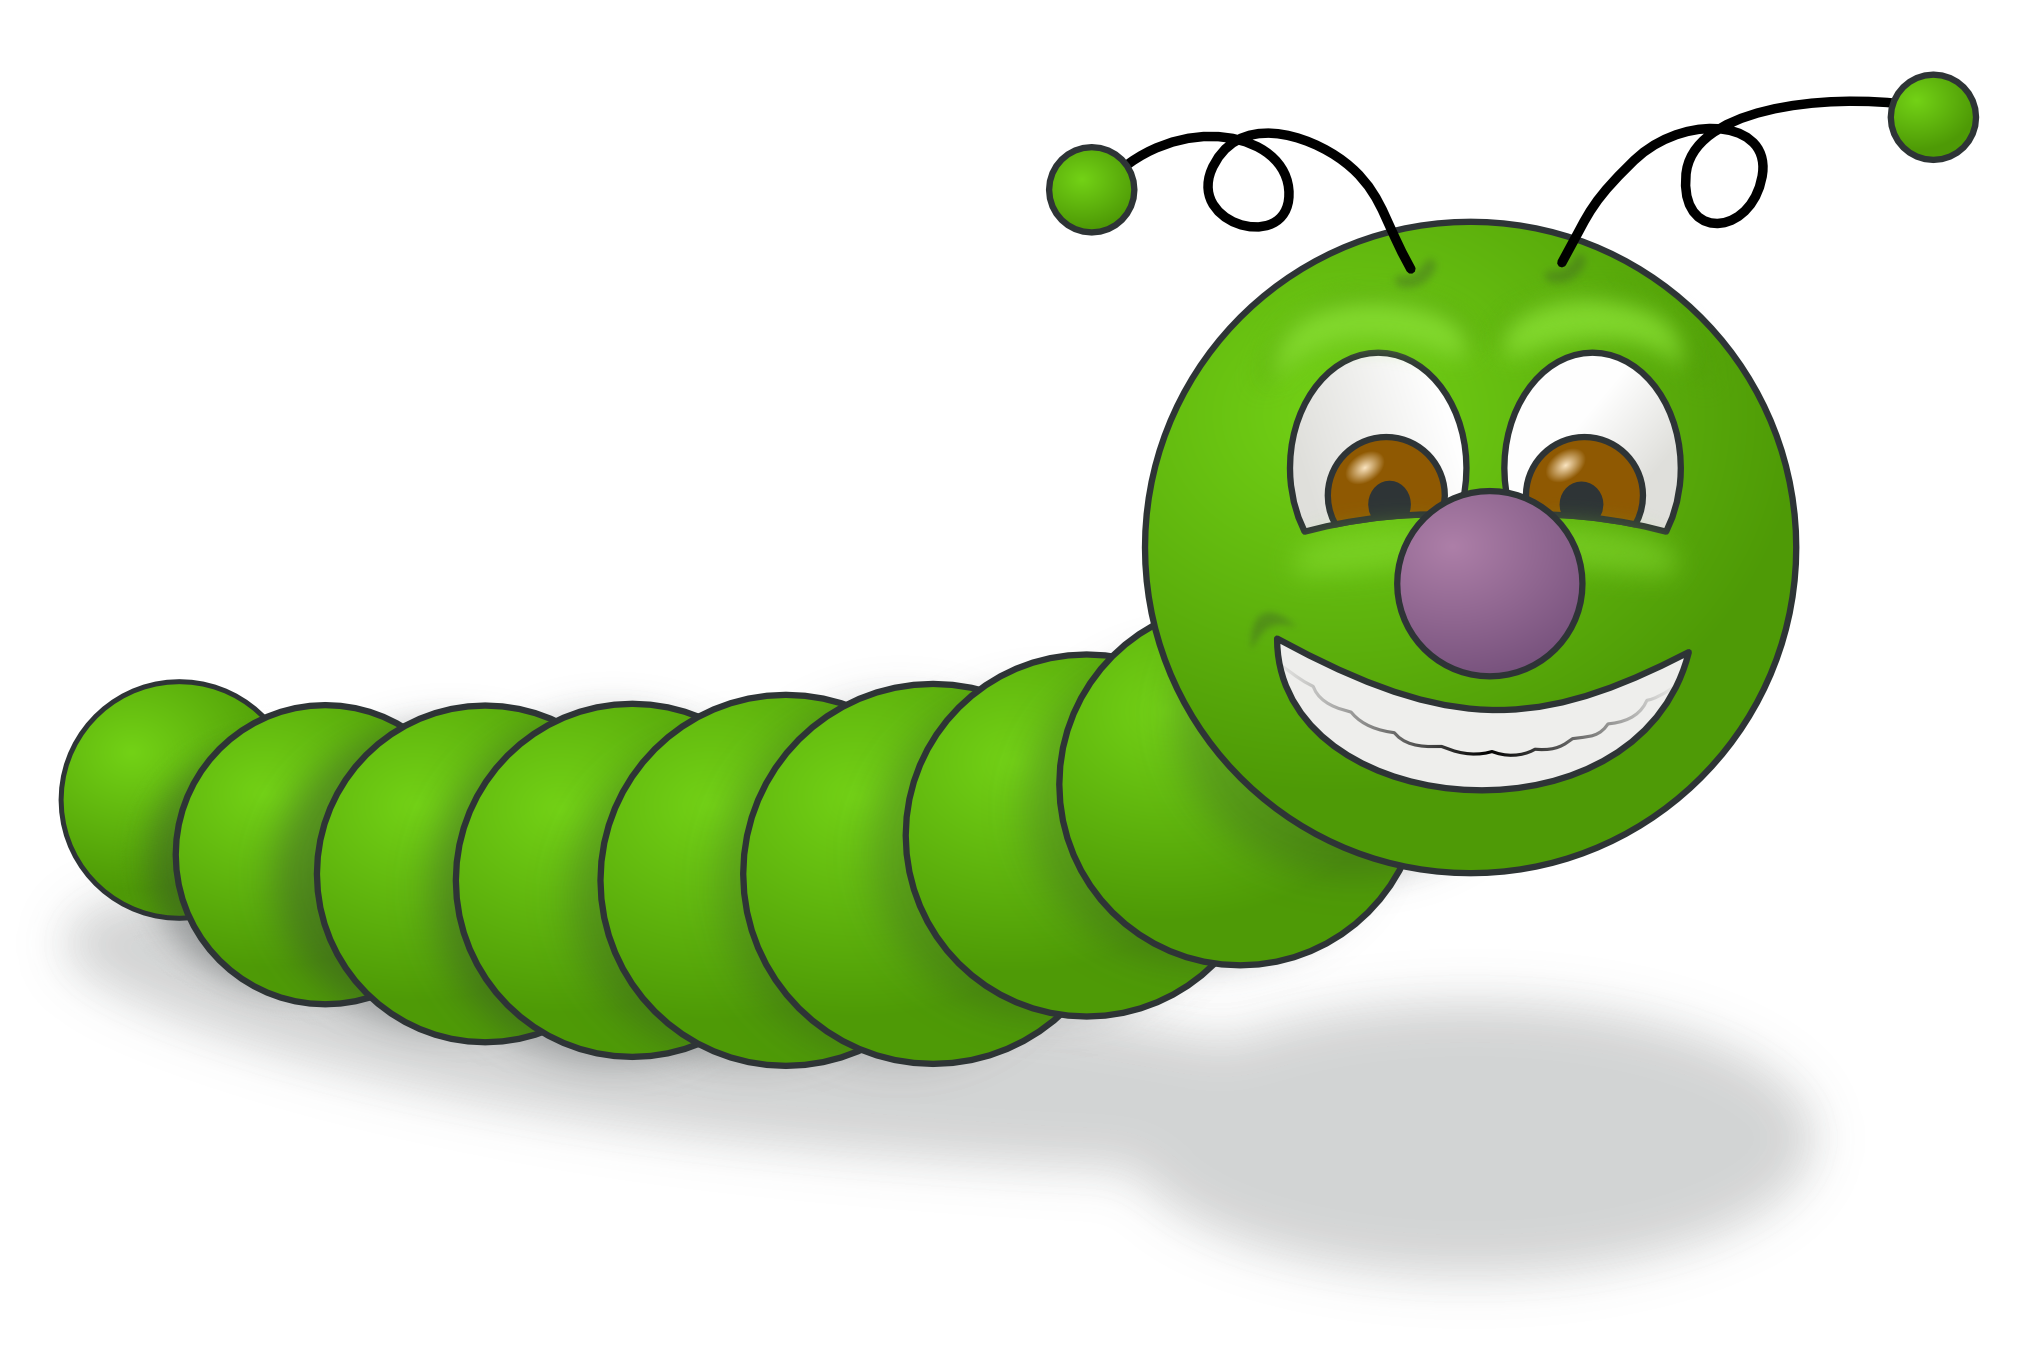 Worms clipart svg. Insect worm panda free